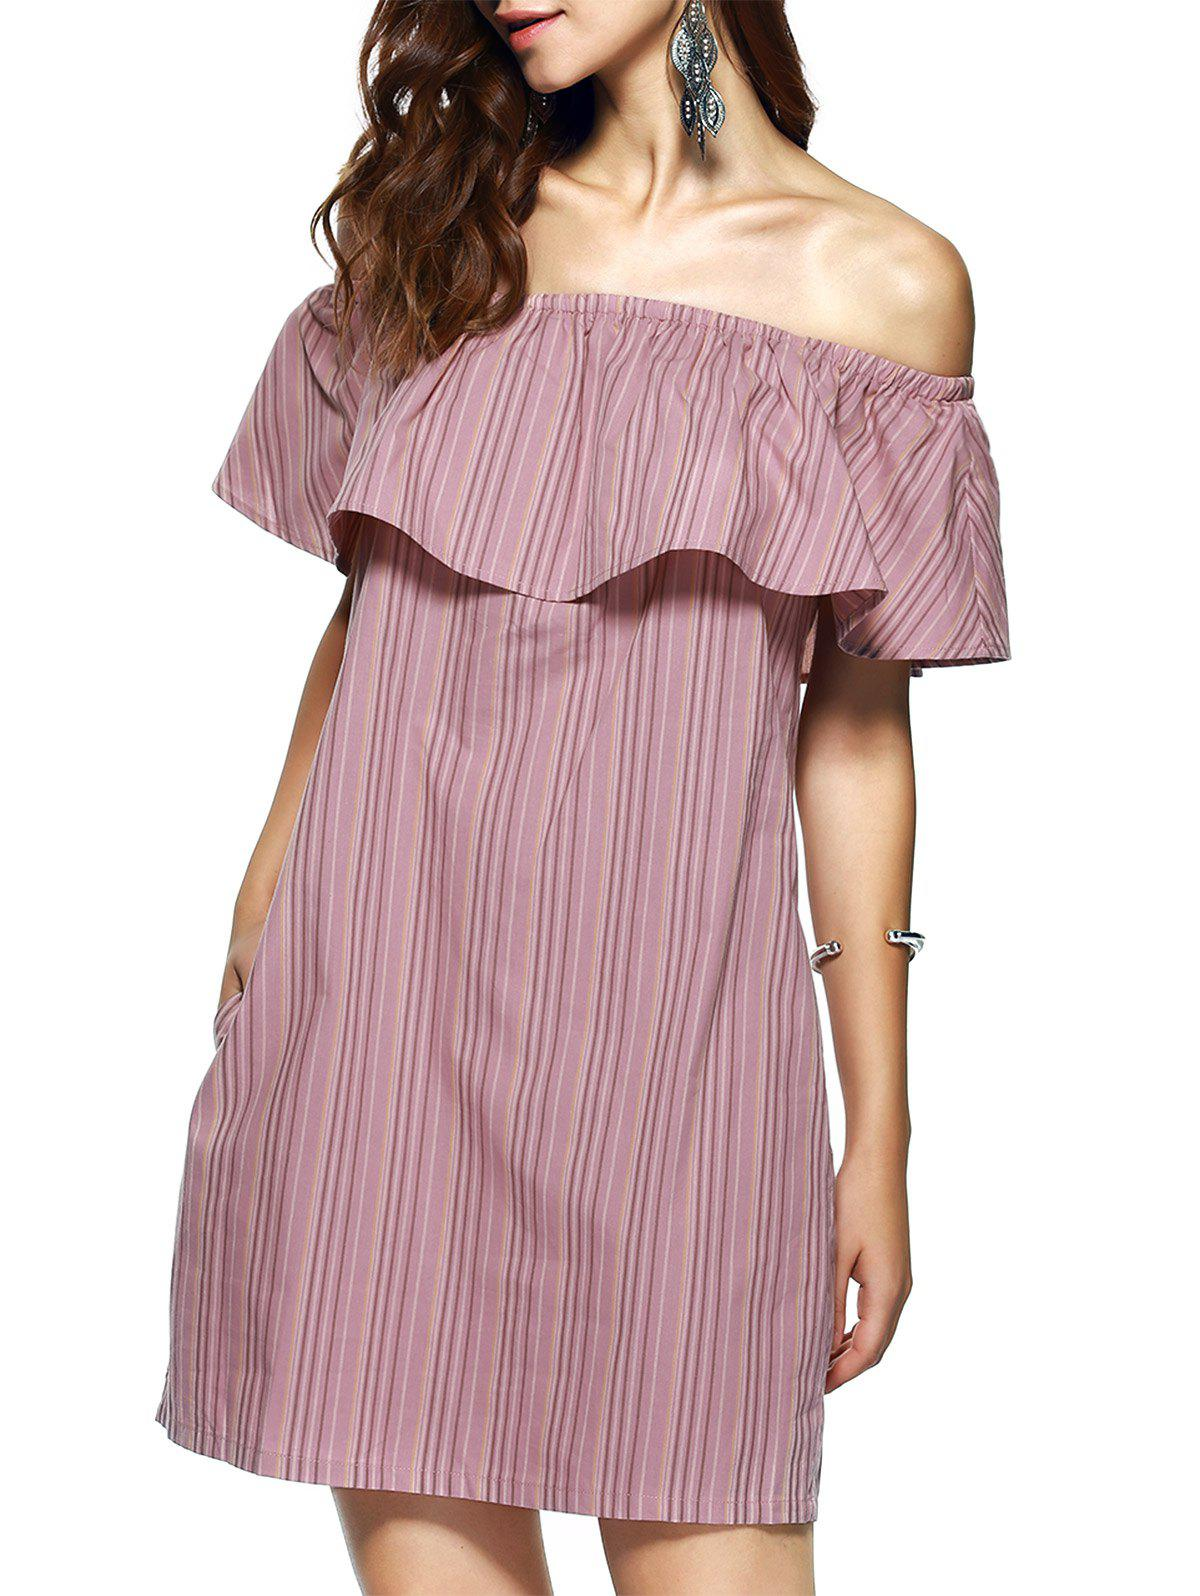 Elegant Women's Off-The-Shoulder Sleeveless Stripe Dress - STRIPE XL